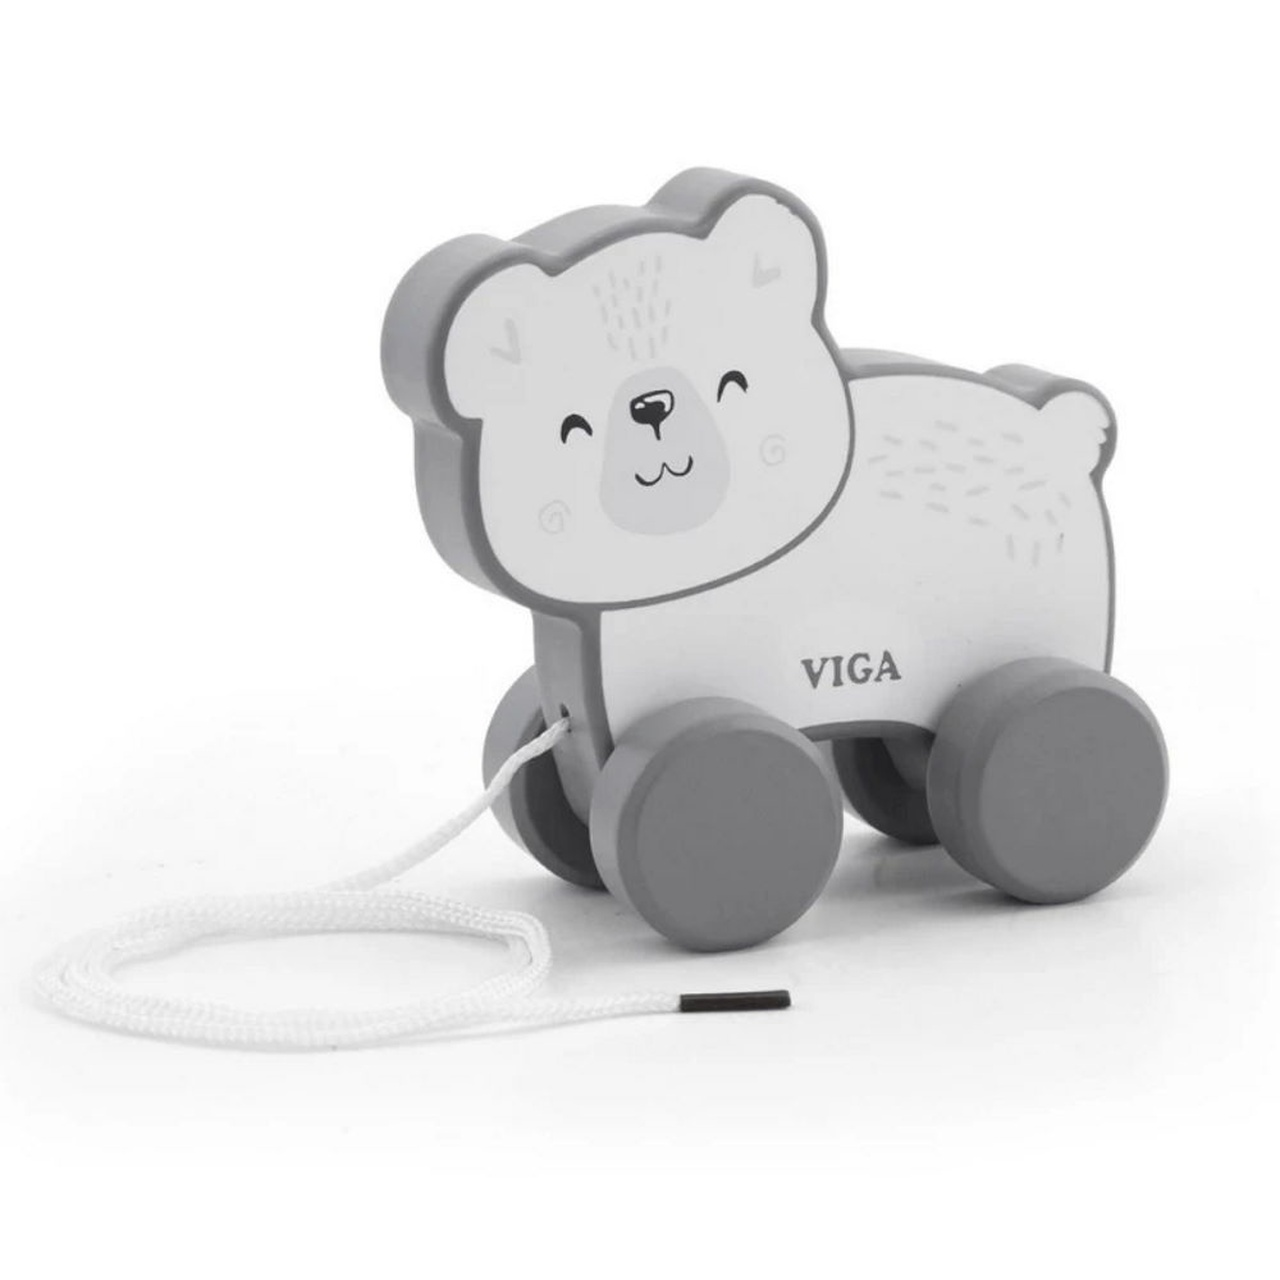 Viga PolarB Pull Along Animals at Baby Barn Discounts A sturdy wooden polar bear with a long pull along cord, great for imagination and motor skills.